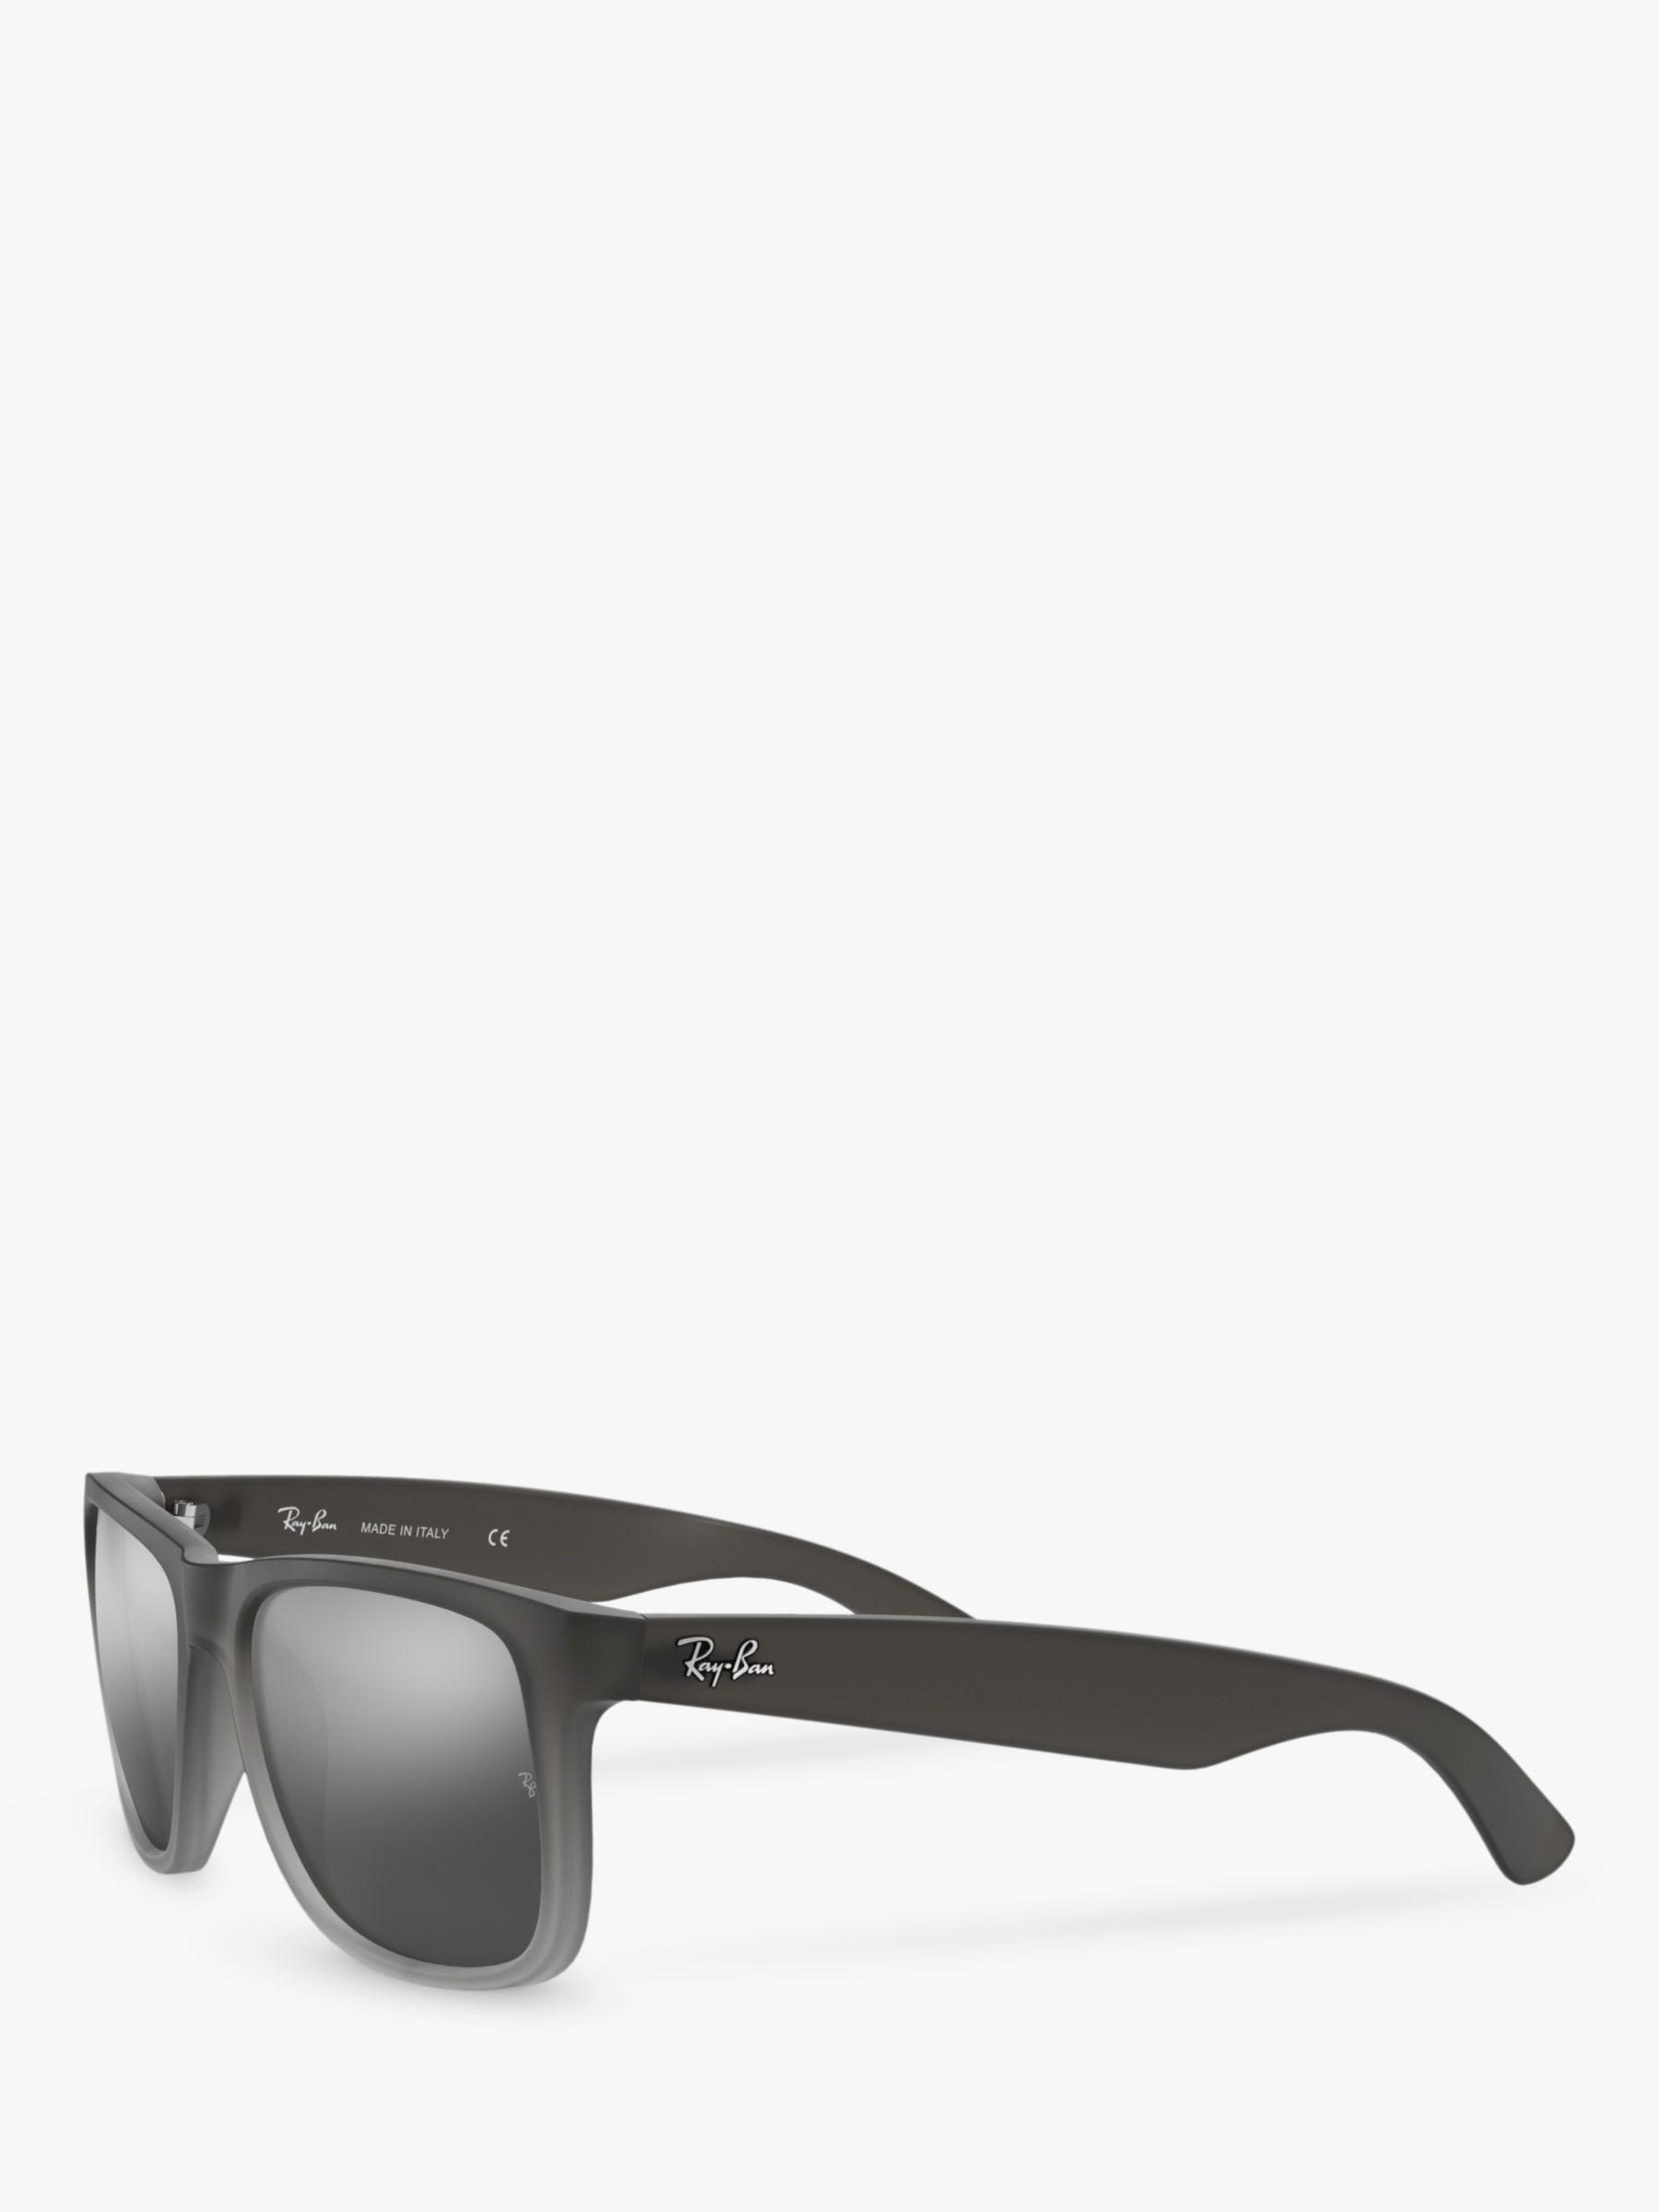 faa7ddf729 Ray-Ban Rb4165 Men s Justin Rectangular Sunglasses in Gray for Men - Lyst